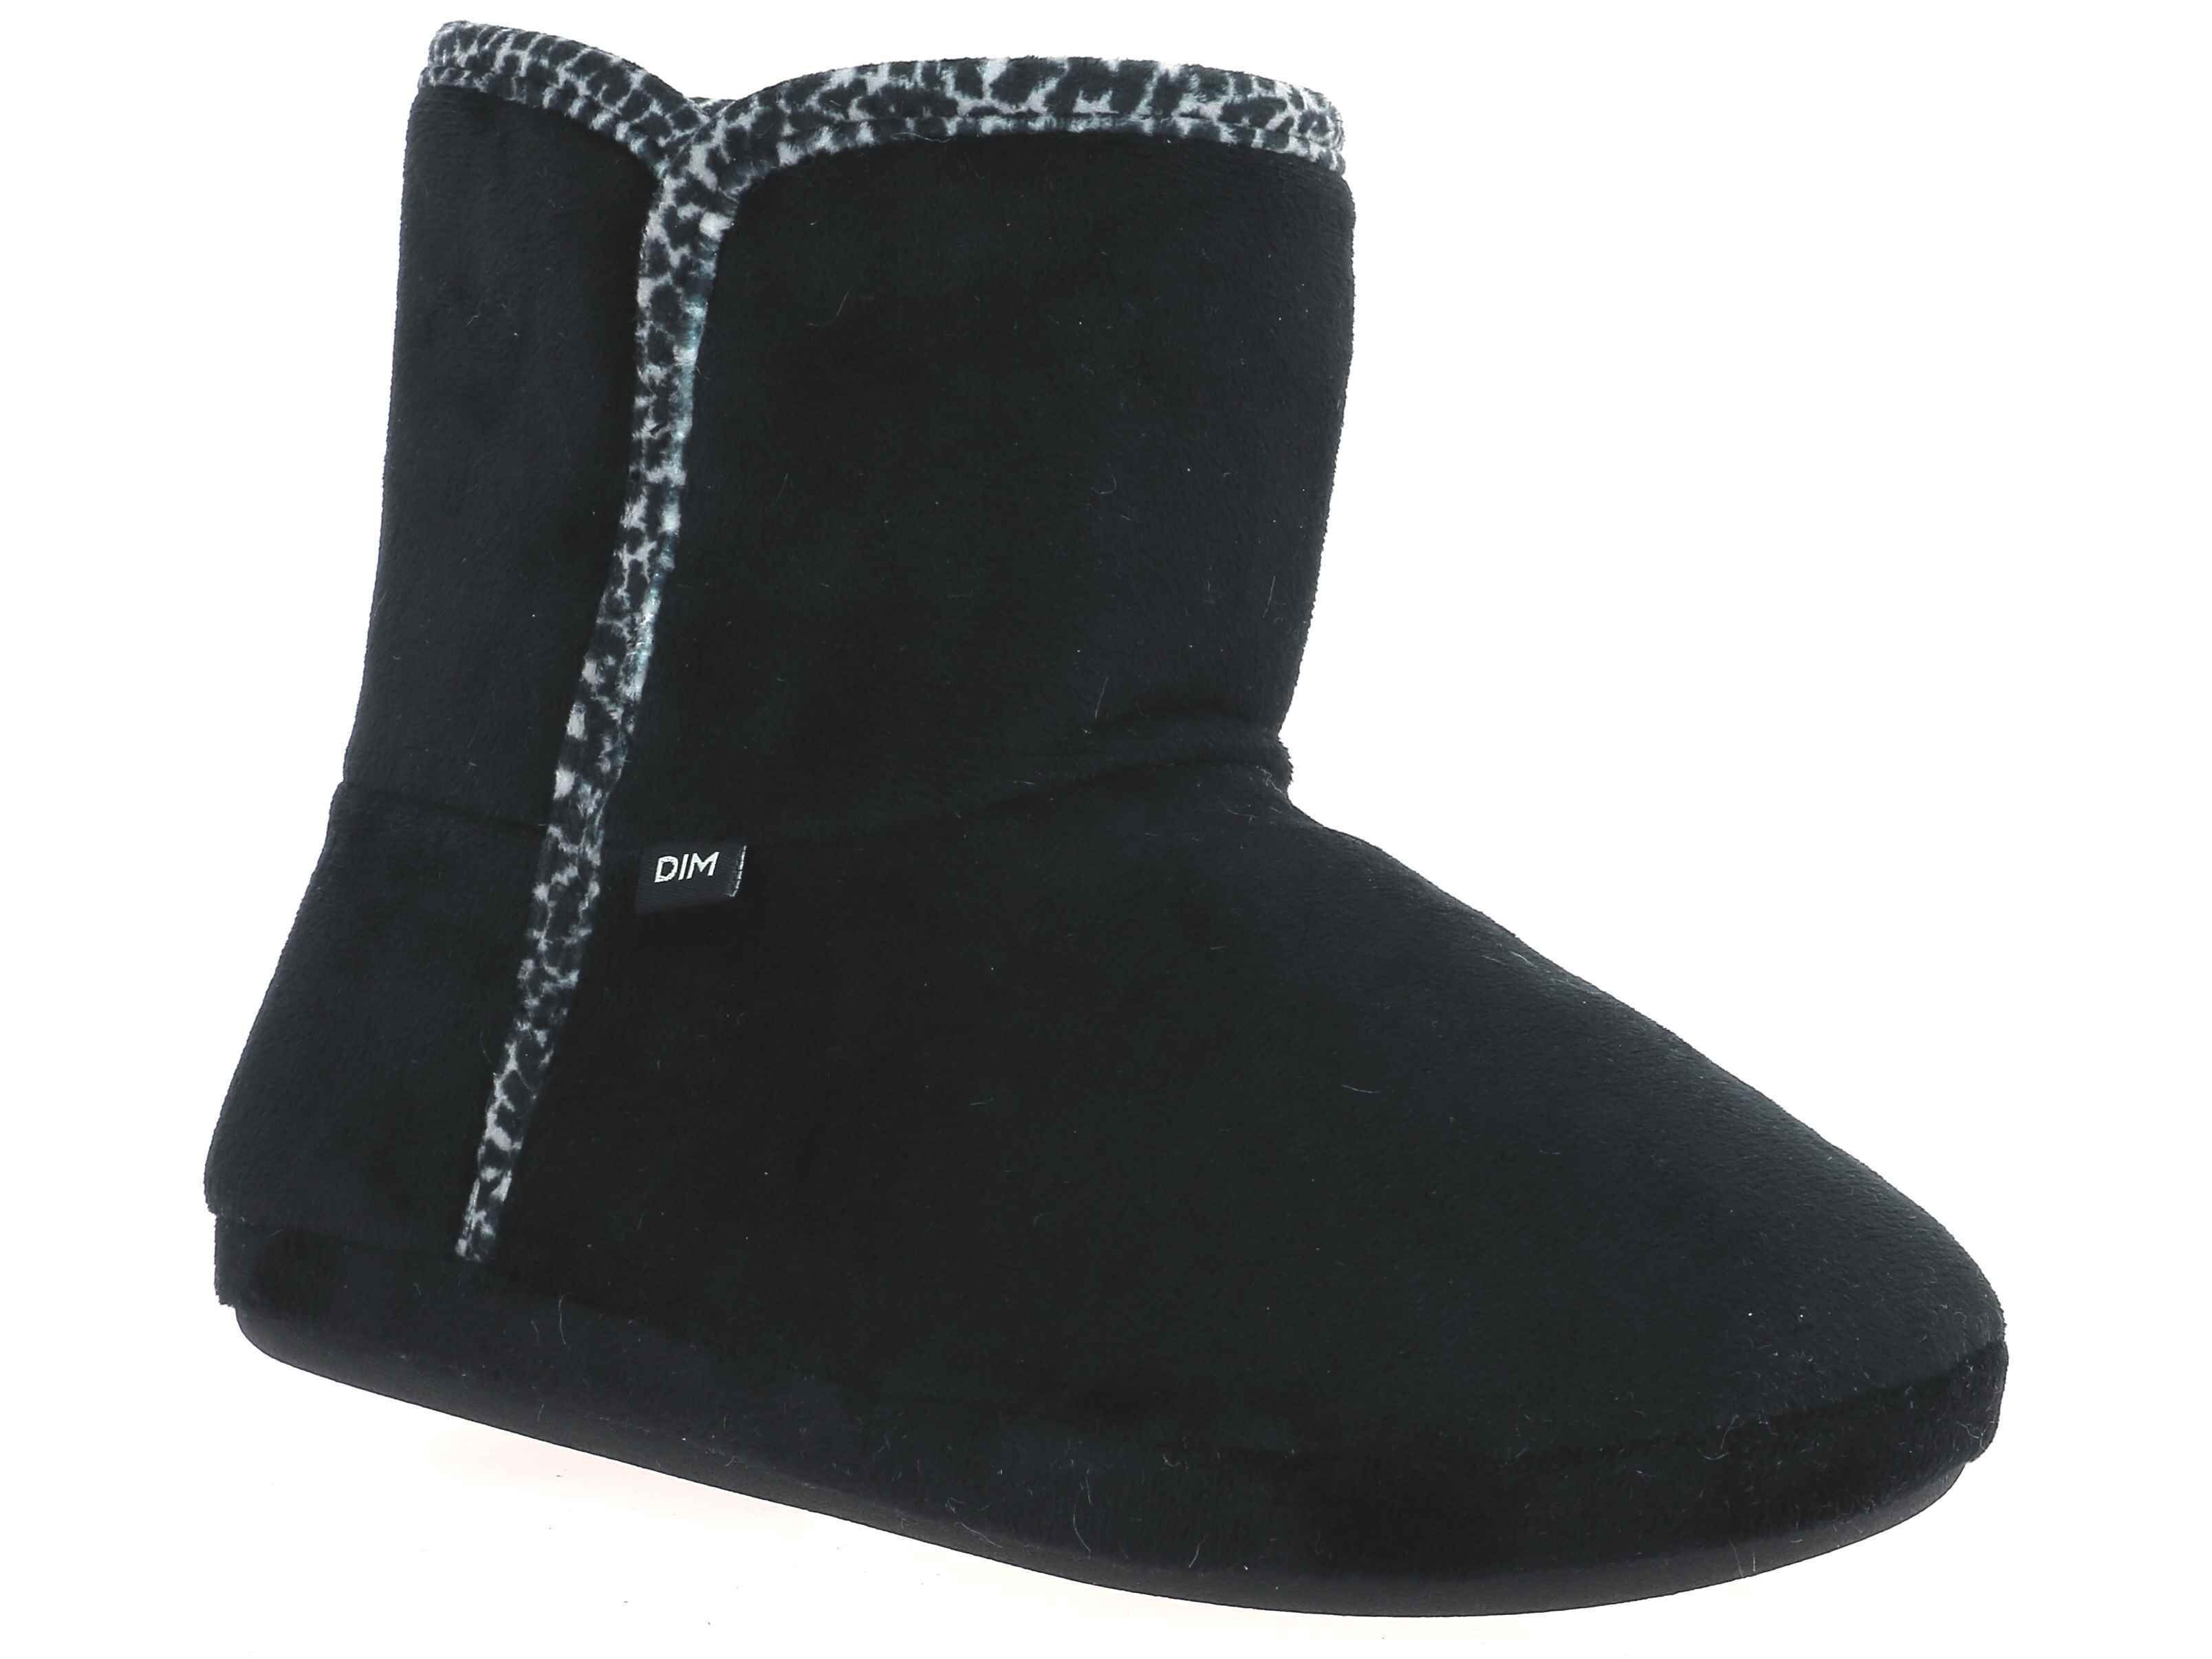 PantouflesDim PantouflesDim Femmeamp; Femmeamp; Chaussons Chaussons Chaussons NOn8k0wPX